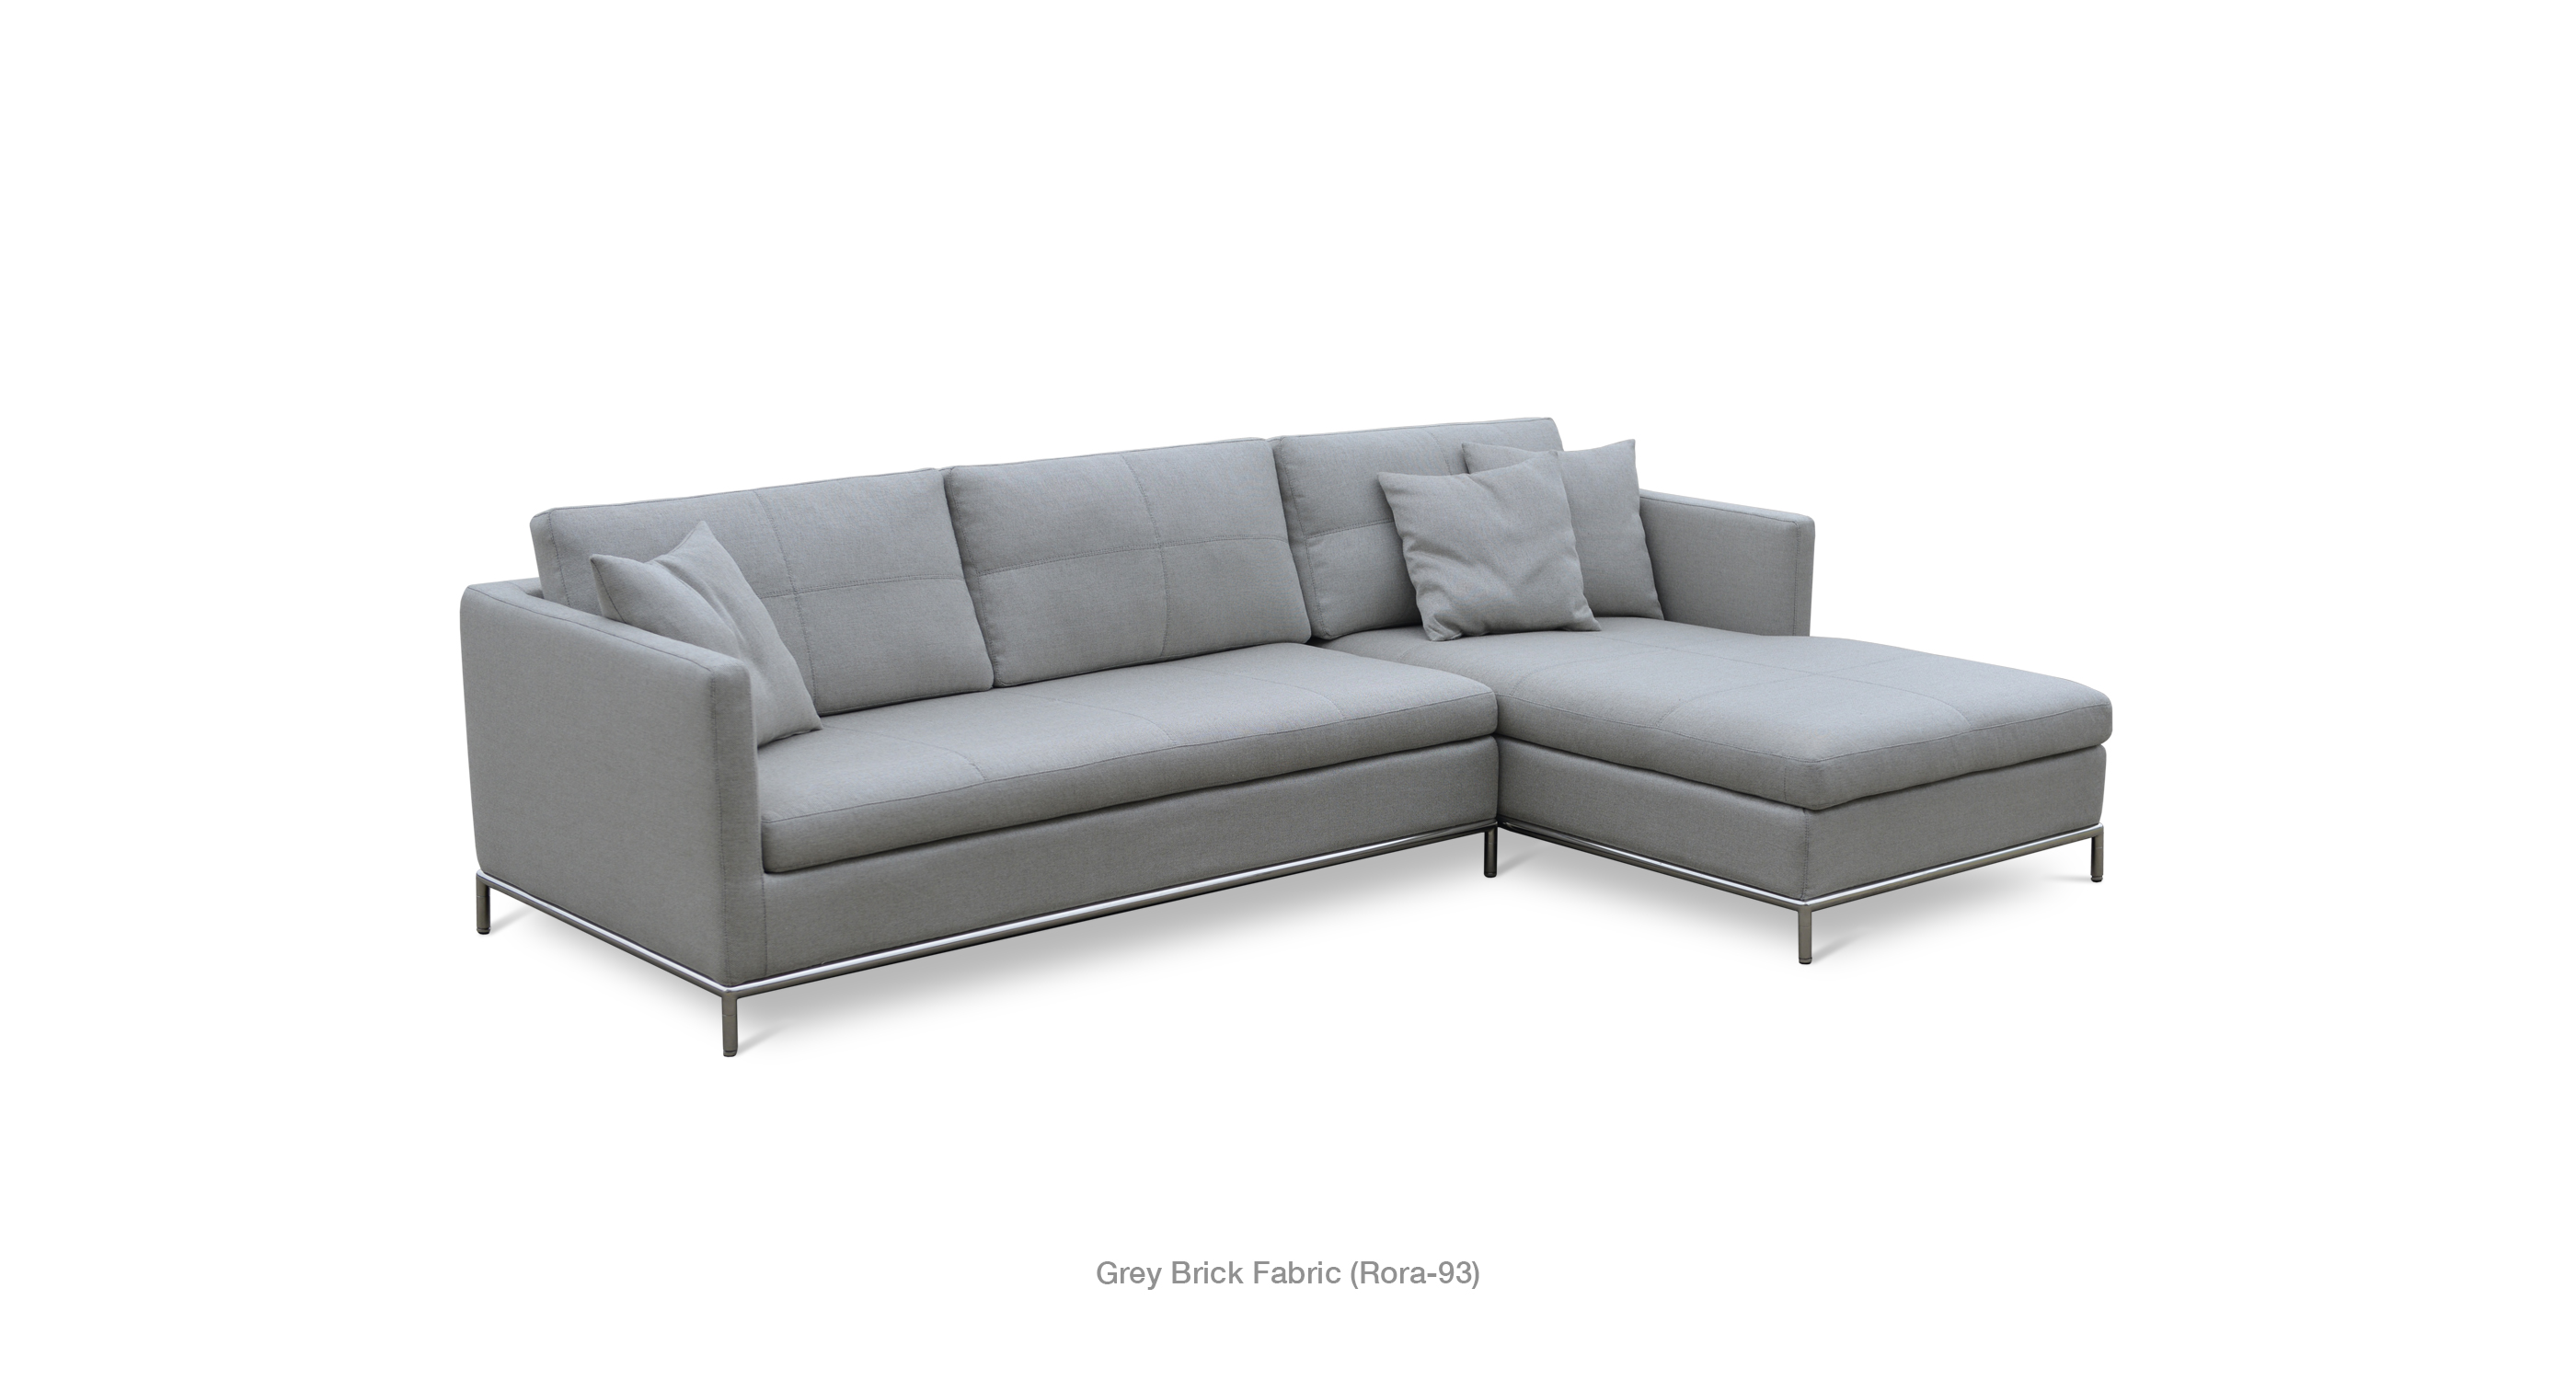 Istanbul Sec Grey Brick Fabric  sc 1 st  SOHO Concept : sectionals the brick - Sectionals, Sofas & Couches